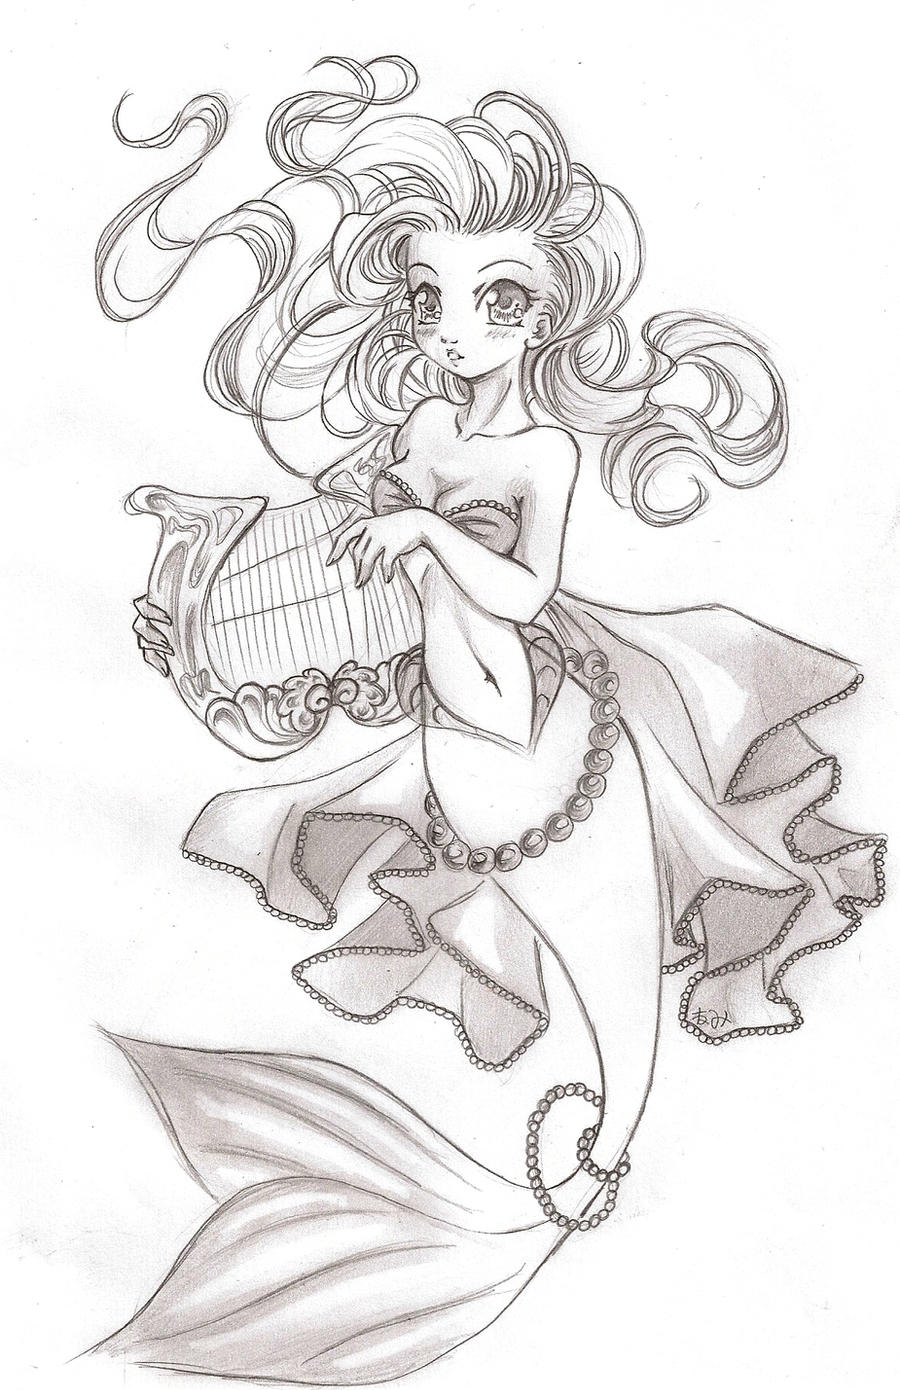 Anime Mermaid Drawing Images & Pictures - Becuo